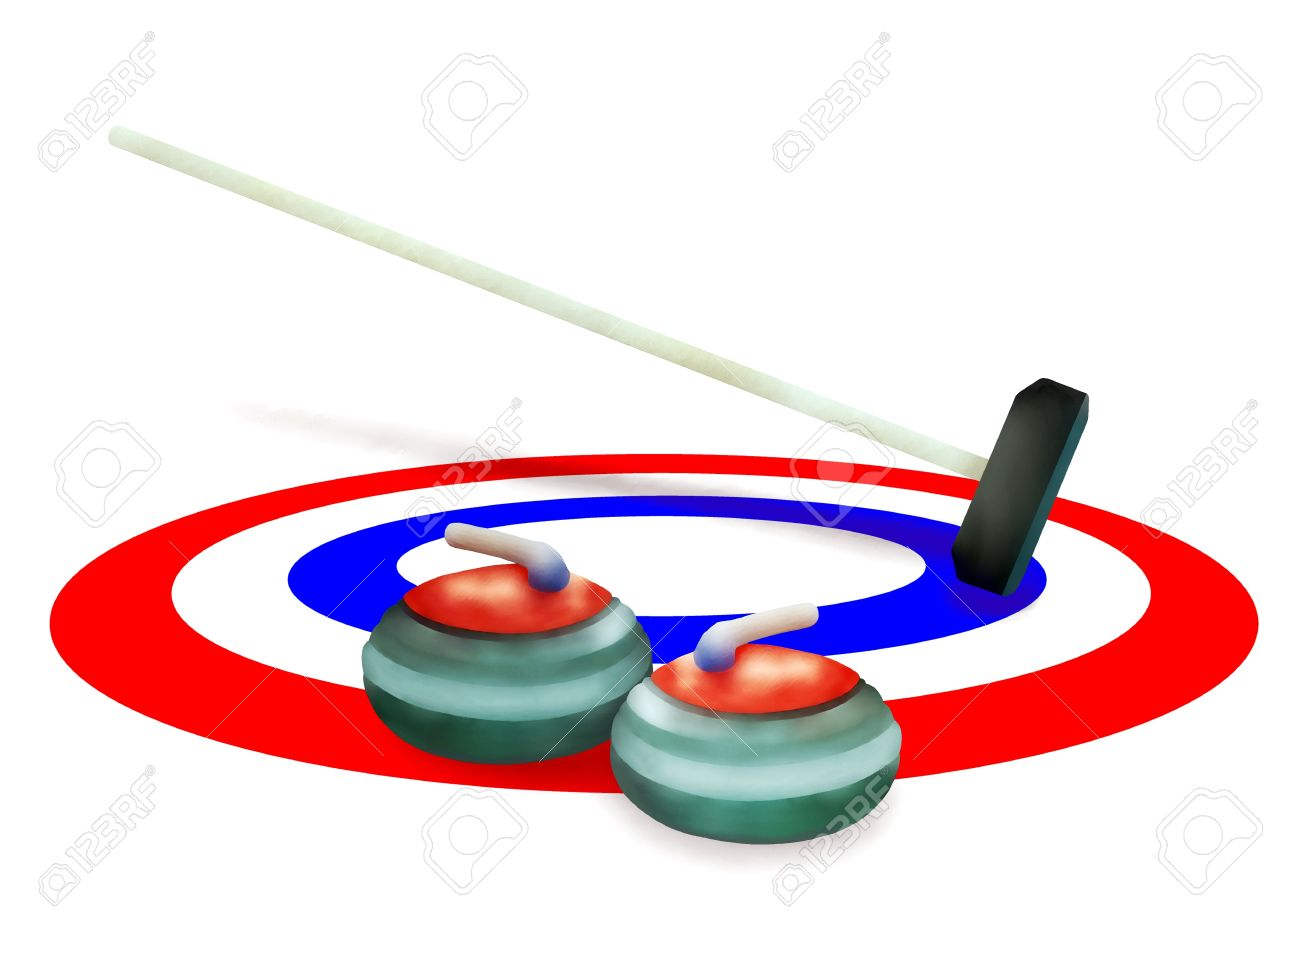 Curling rings clipart.